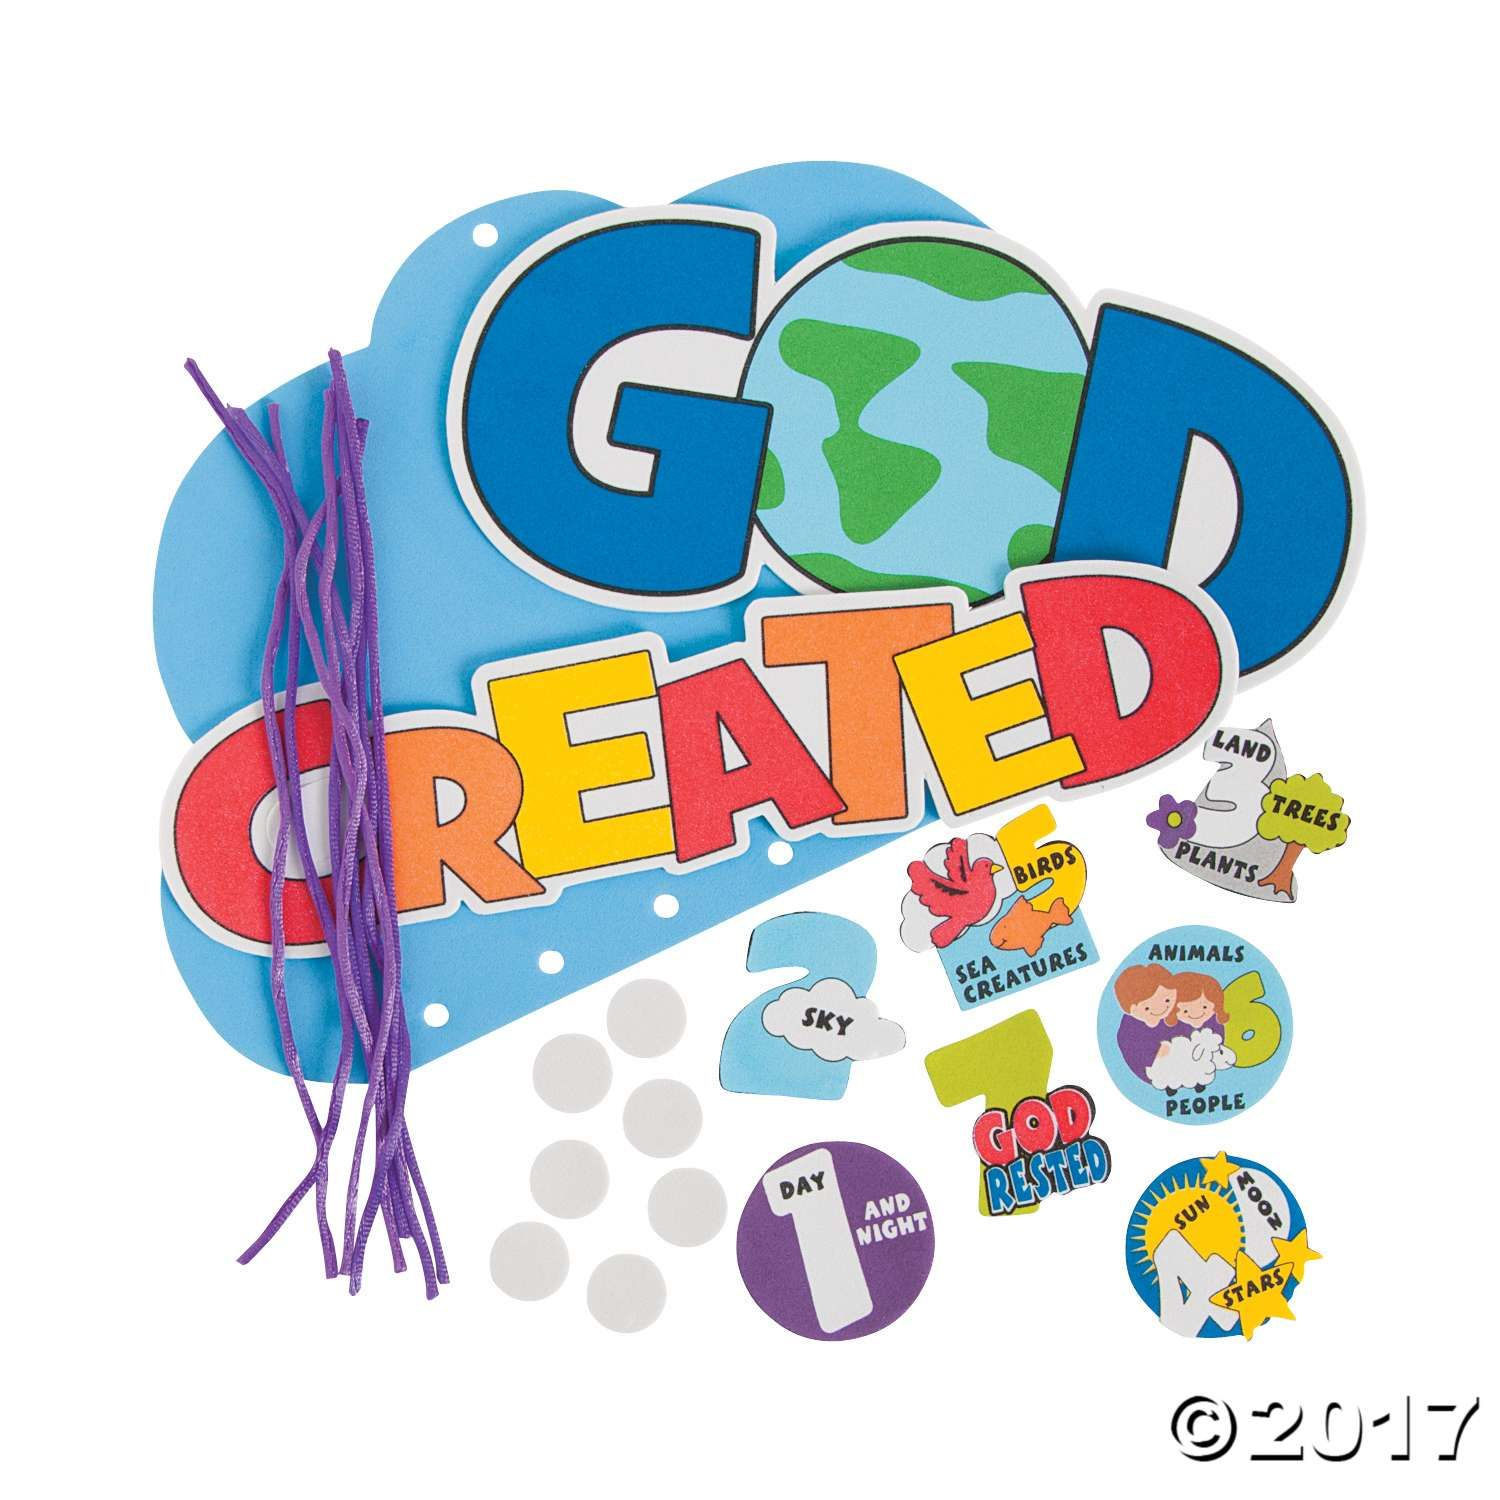 7 Days Of Creation Mobile Craft Kit